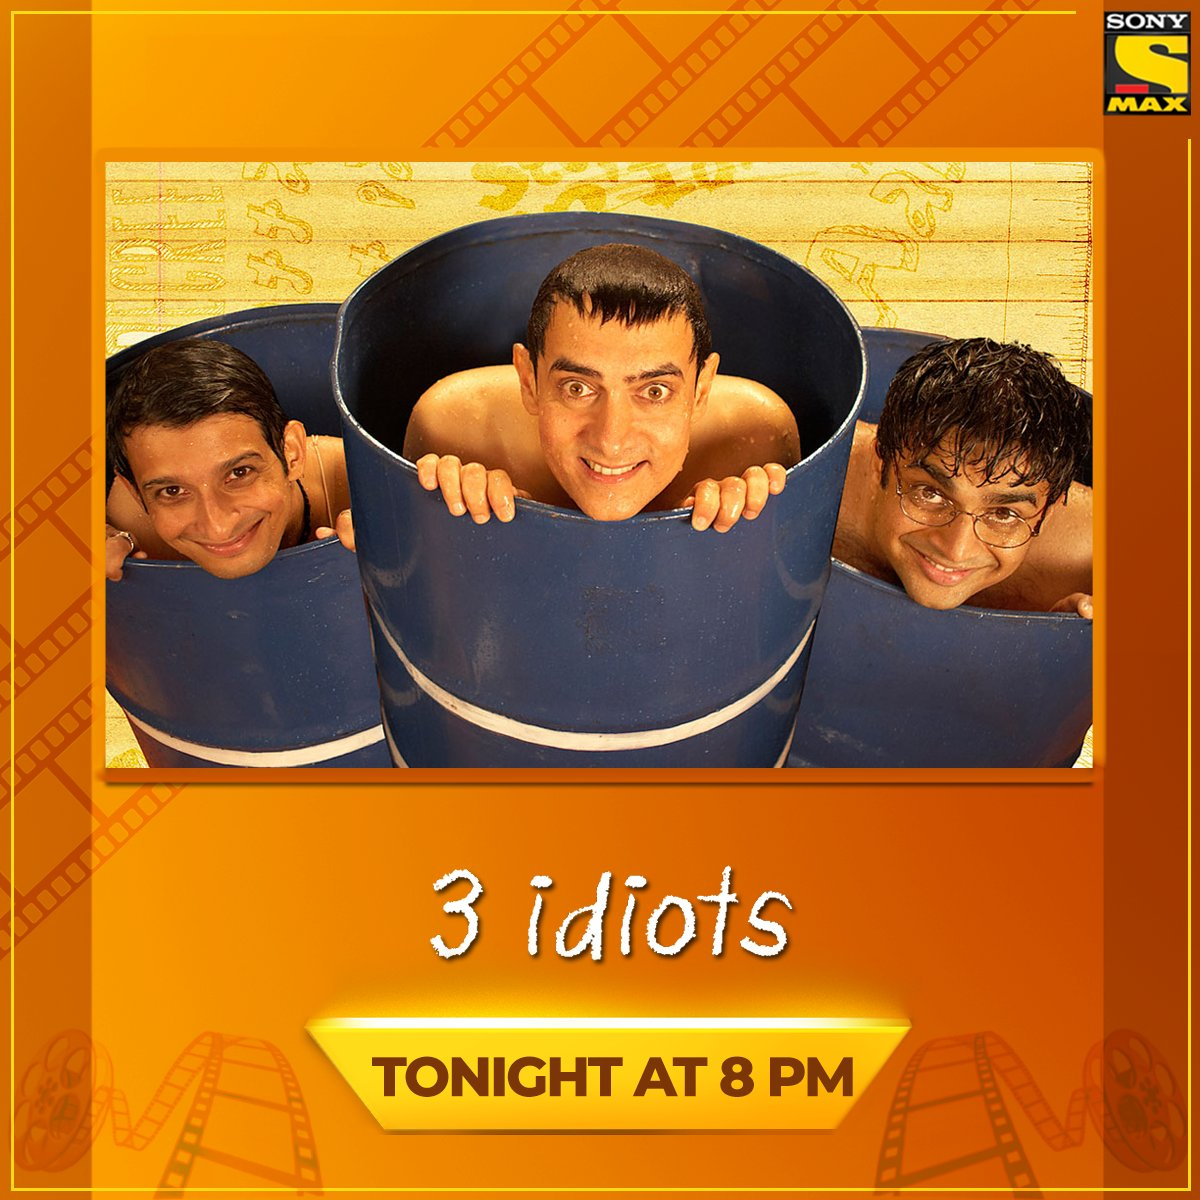 Excellence or Success? Find out which is the greater pursuit tonight!   : #3Idiots : #SonyMAXUK : 8pm  #MAXUK #BollywoodMovies #Bollywood #BollywoodActor #BollywoodActress #Bollywoodstyle #romance #Love #Heartache #AamirKhan #KareenaKapoorpic.twitter.com/NuIKcTC58f